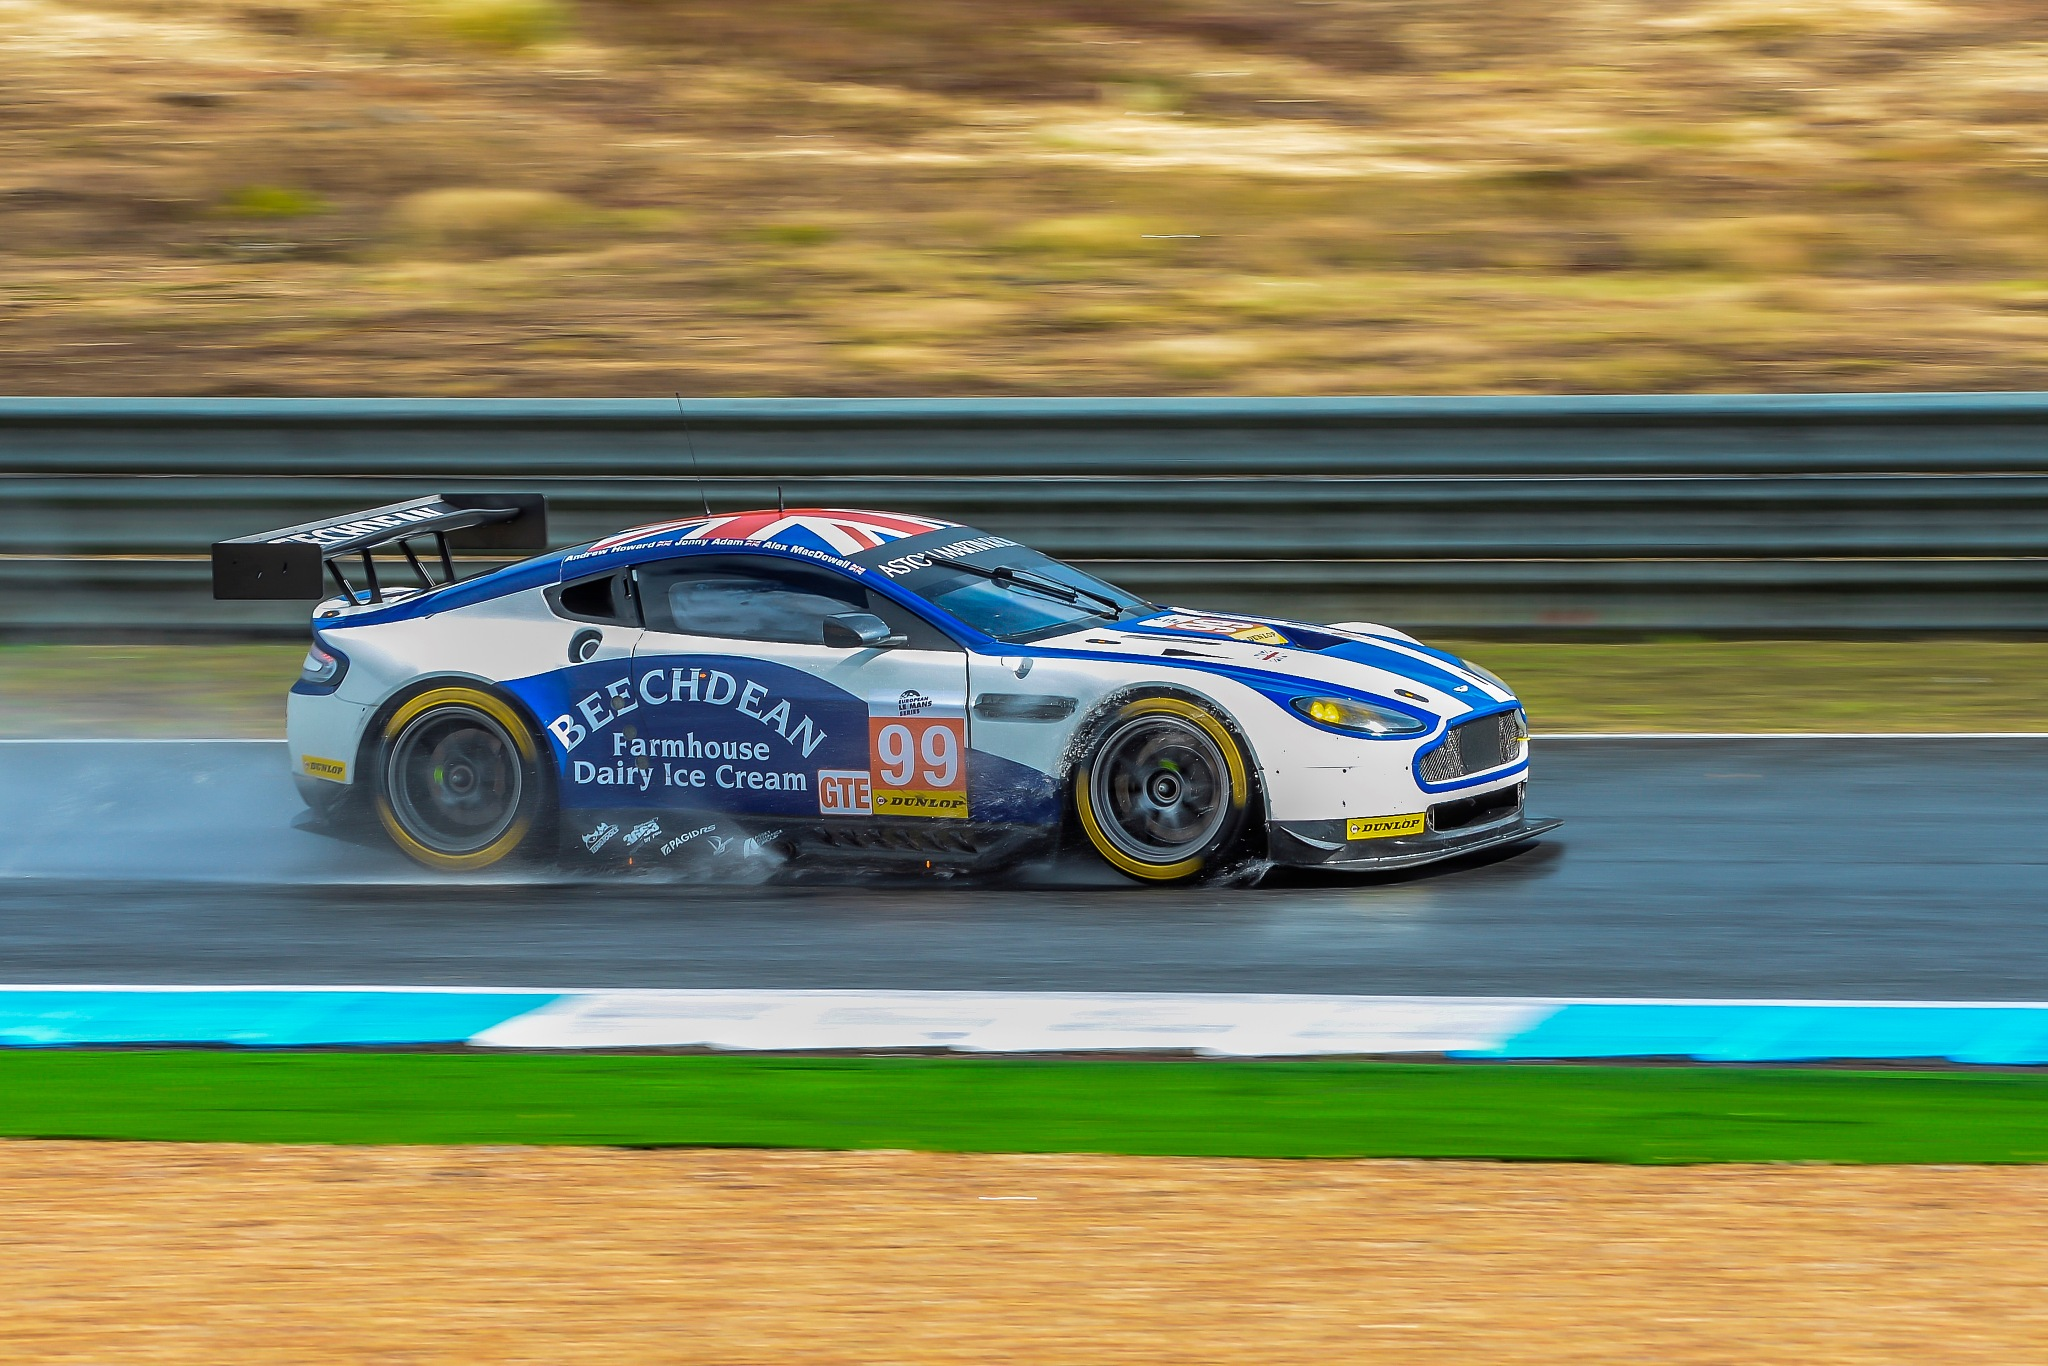 Le Mans Series - Estoril by FernandoLopes